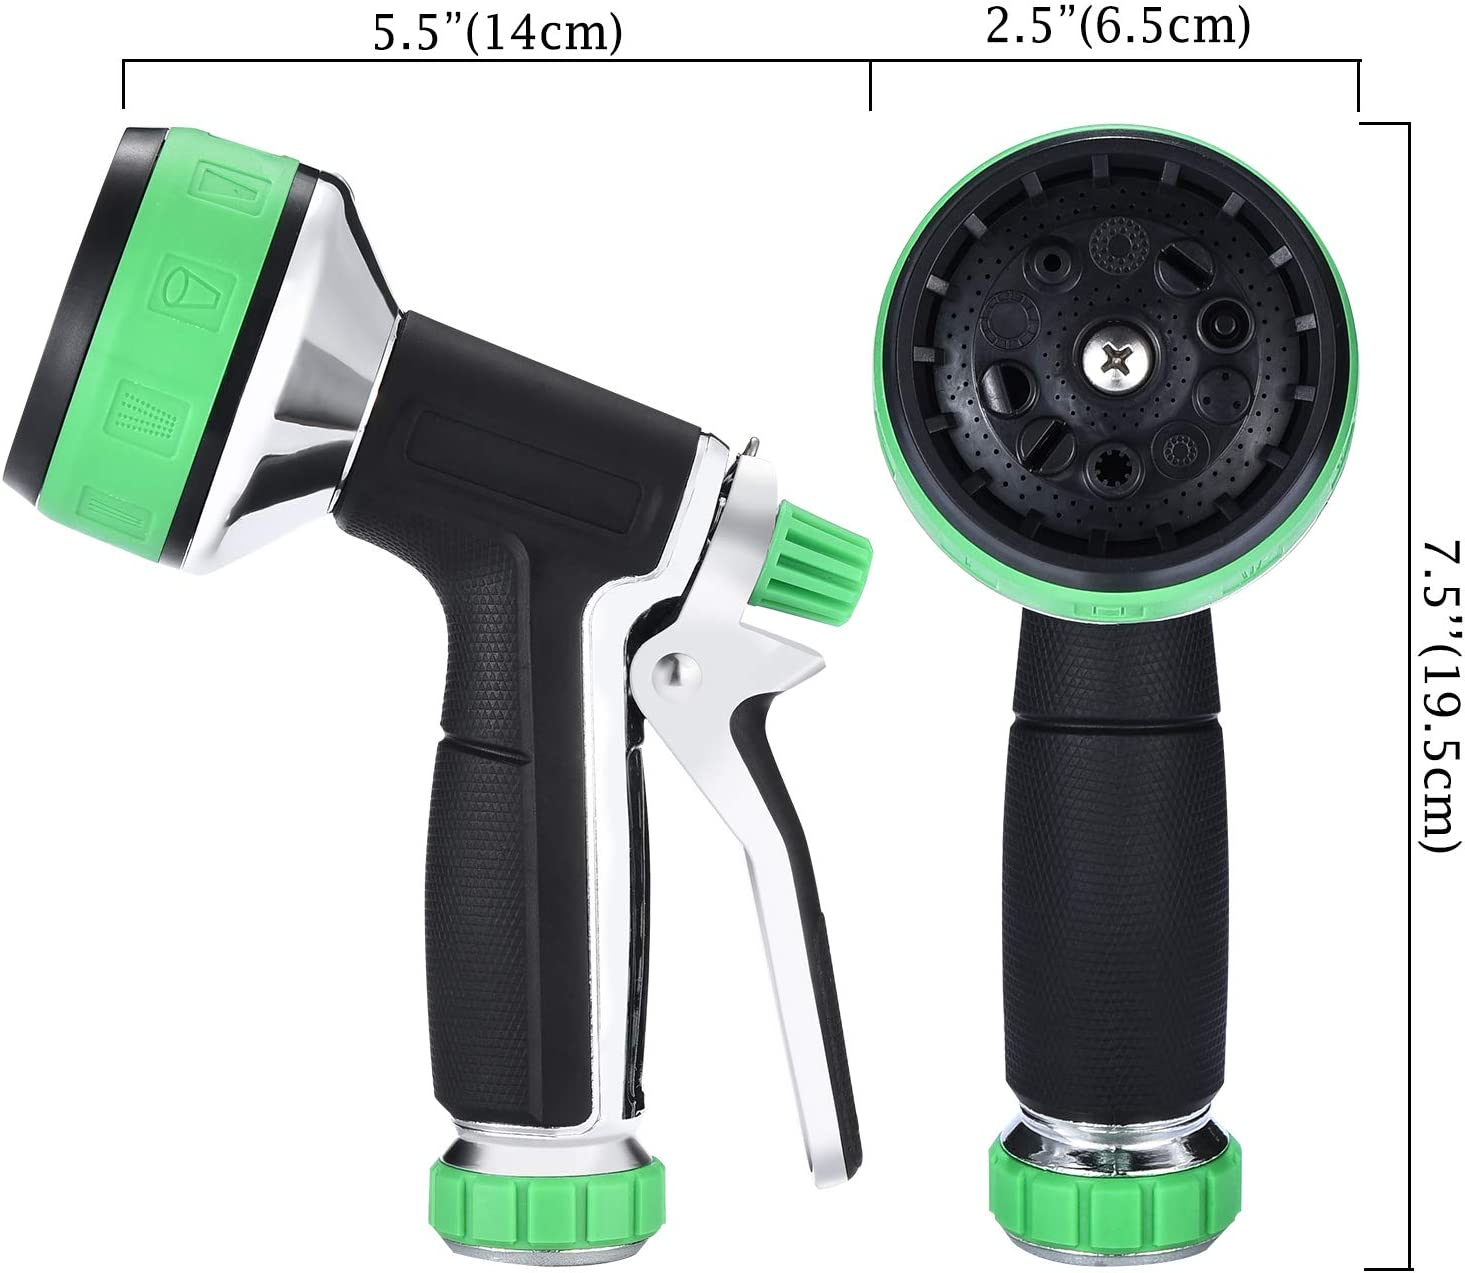 Garden Hose Nozzle| Aluminum Alloy 10 Sprayers Patterns Water Hose Spray Nozzle|Suitable For Watering Equipment, Cleaning, Car washing And Showering Pets: Home Improvement